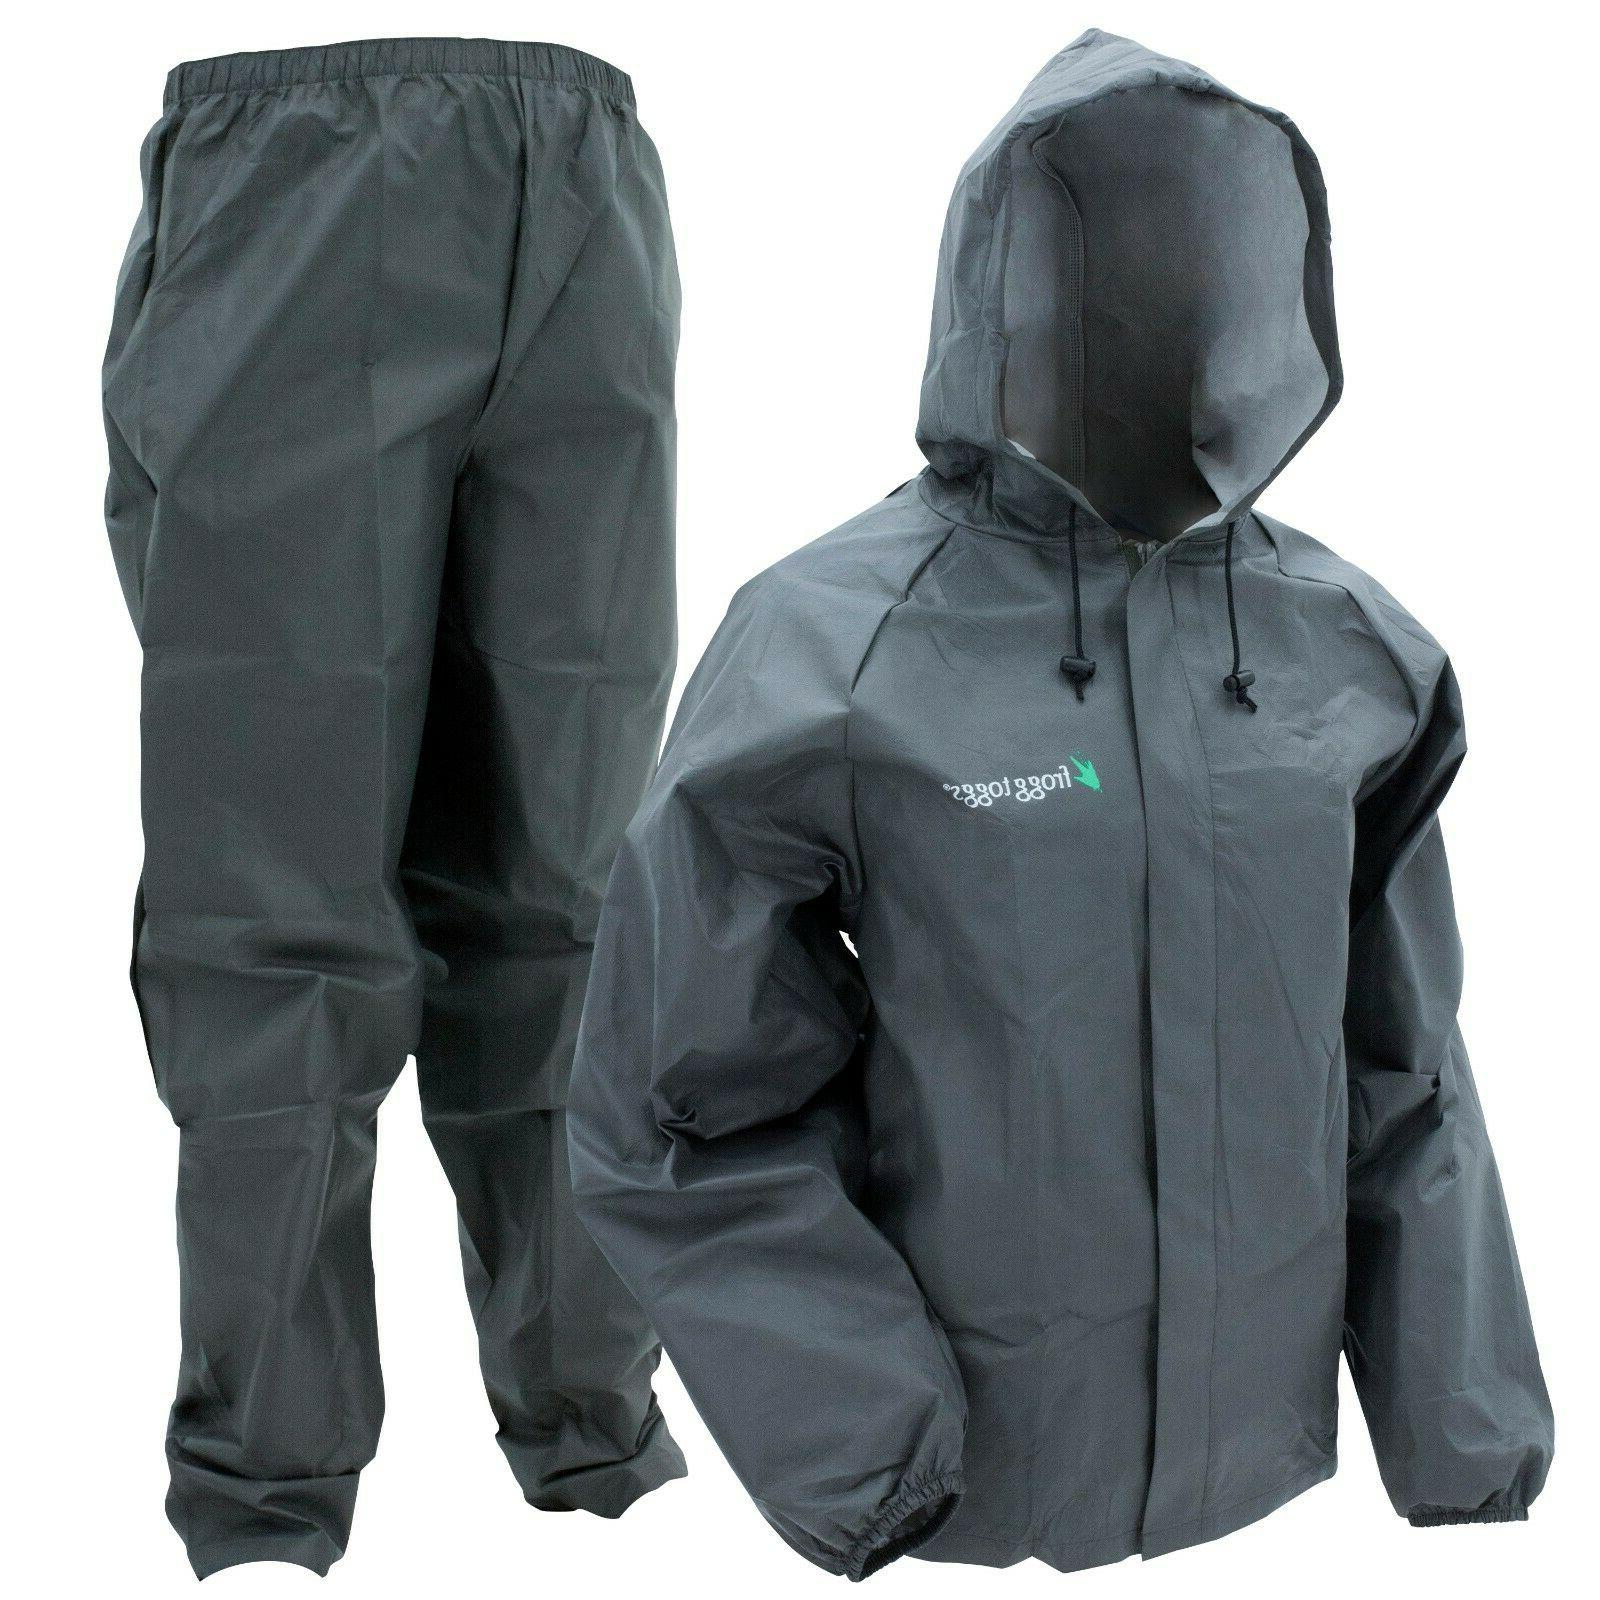 Frogg Toggs UL12104 Lite Suit New CHOOSE & SIZE FREE SACK